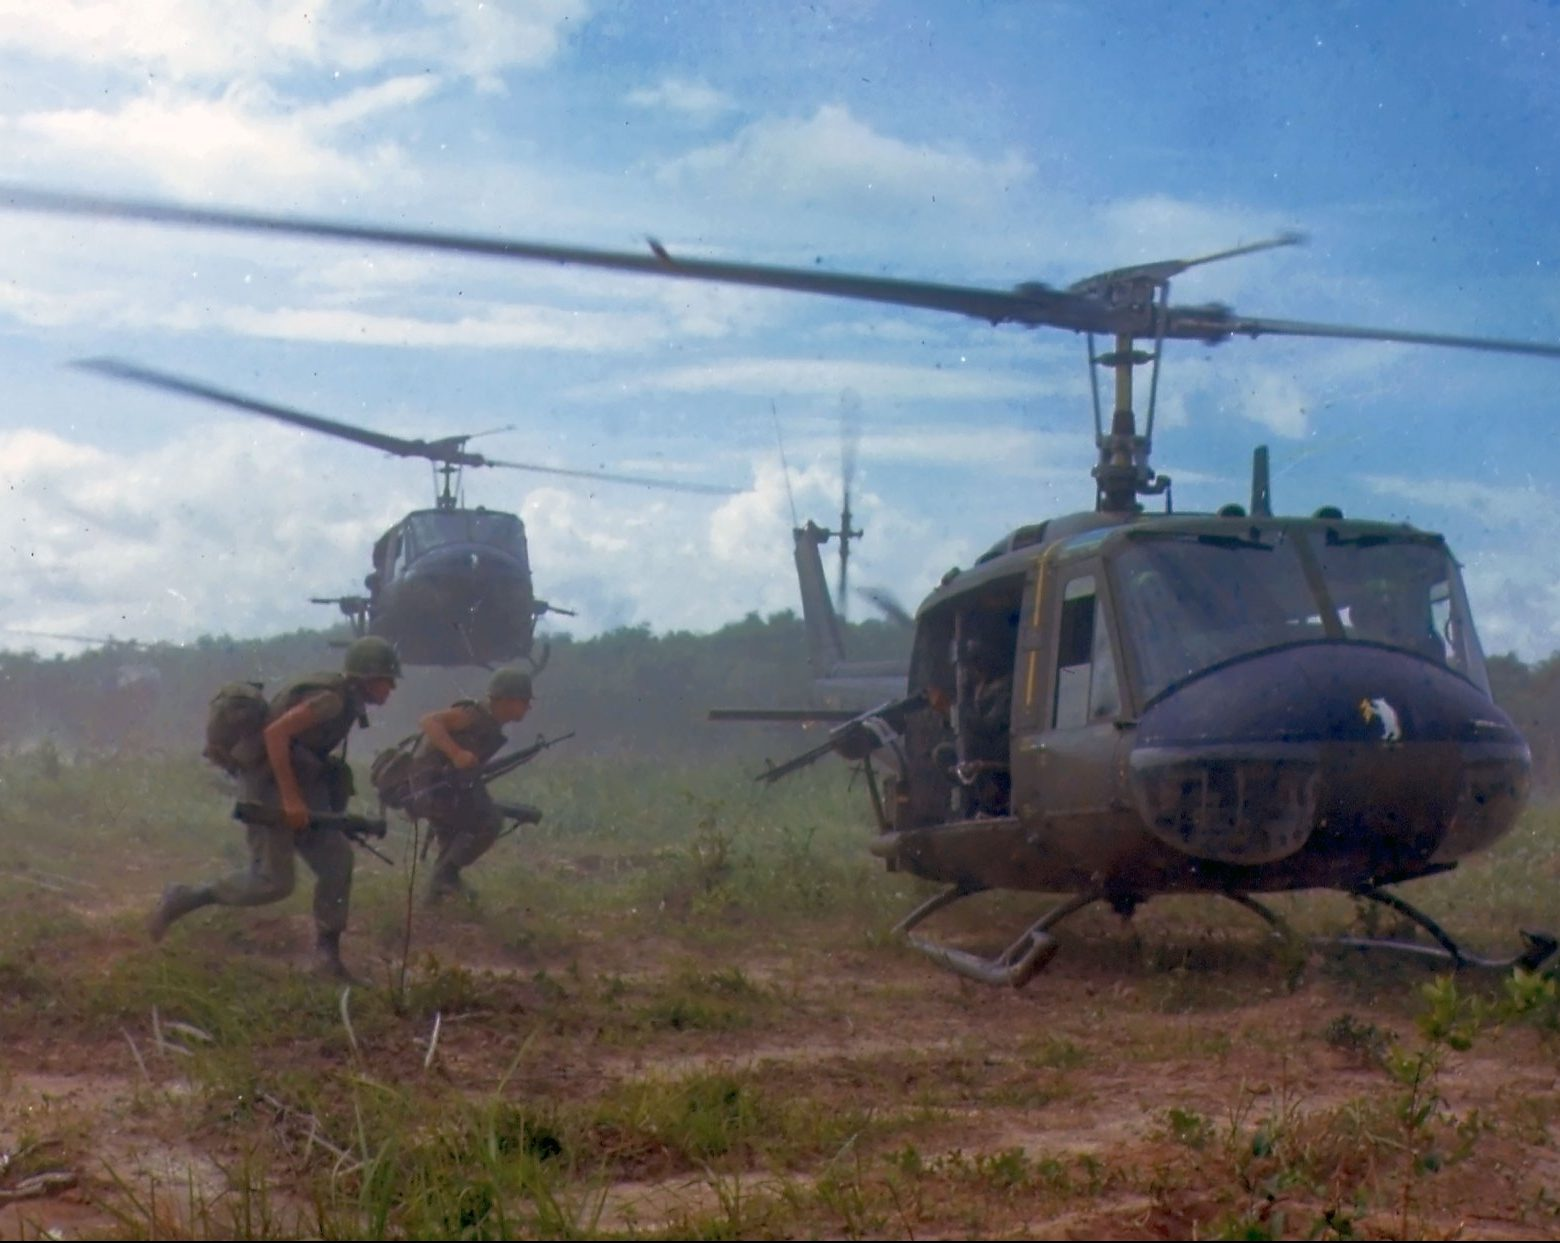 UH 1D helicopters in Vietnam 1966 e1606751396247 30 Things You Probably Didn't Know About Platoon